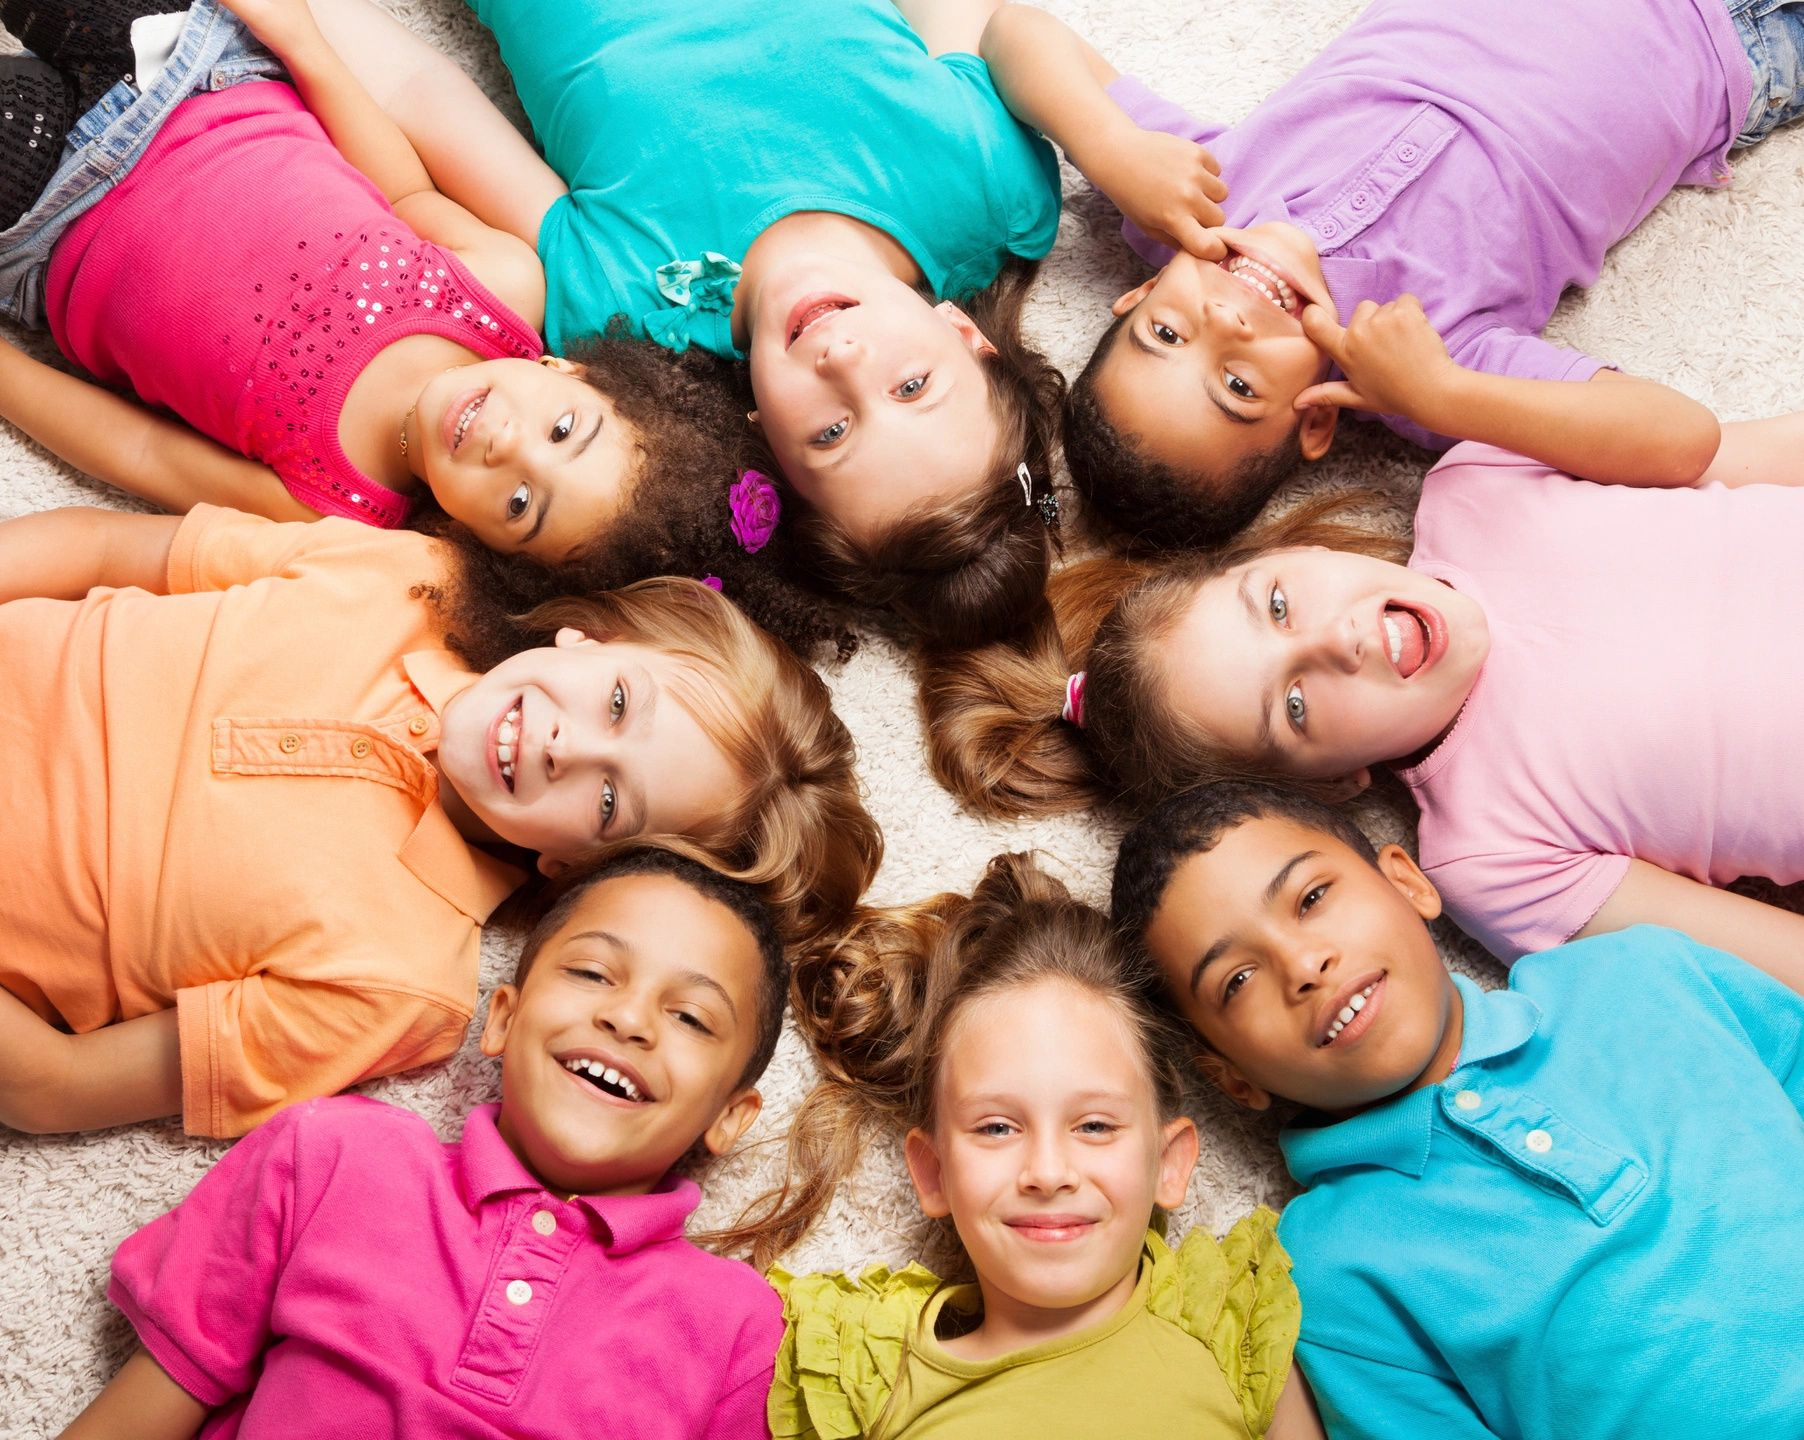 Group of children wearing colorful shorts laying on the ground in a cirle with their heads touching in the middle of the circle